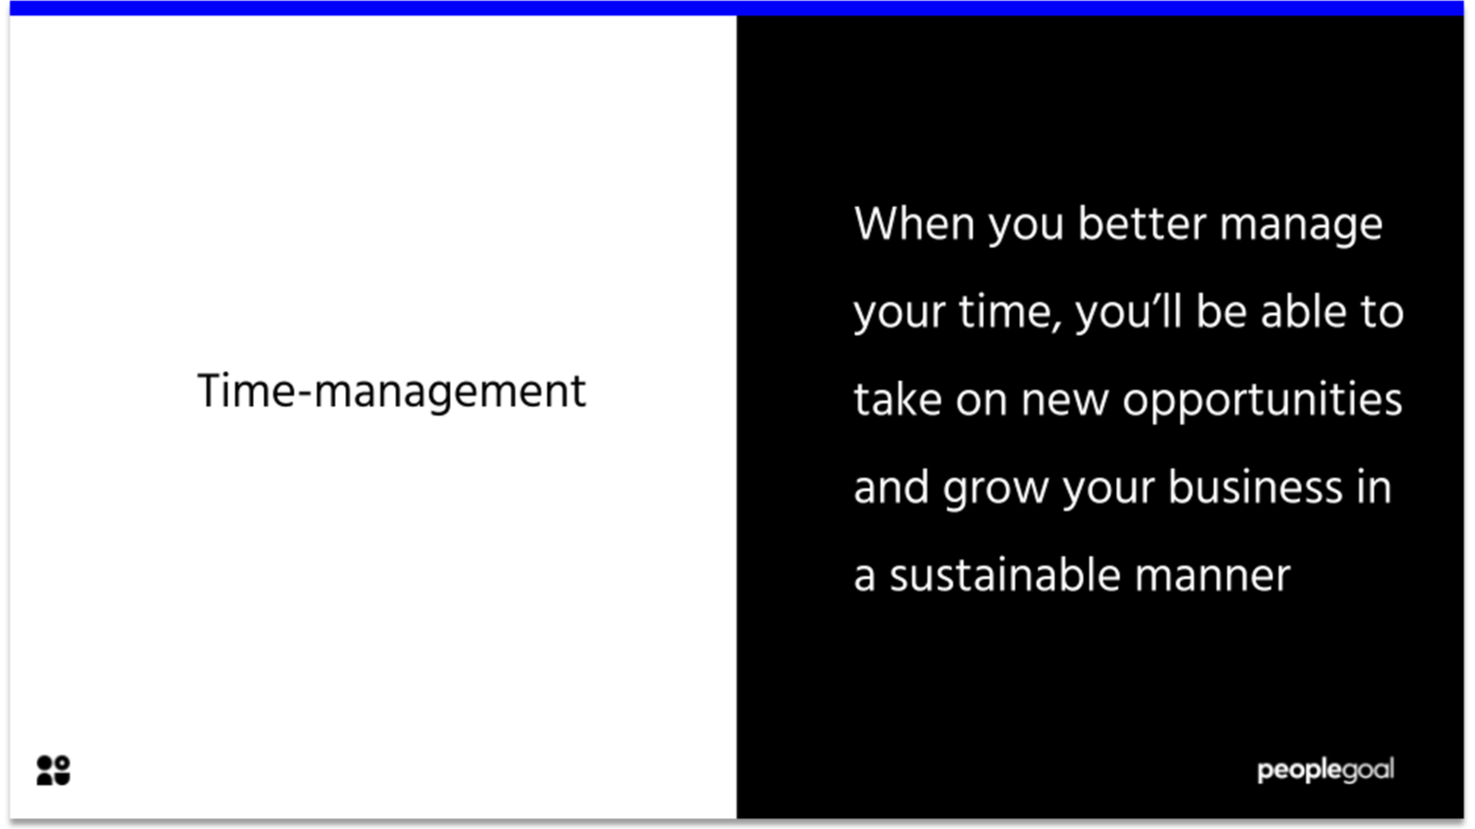 time-management - manager comments for the next review cycle